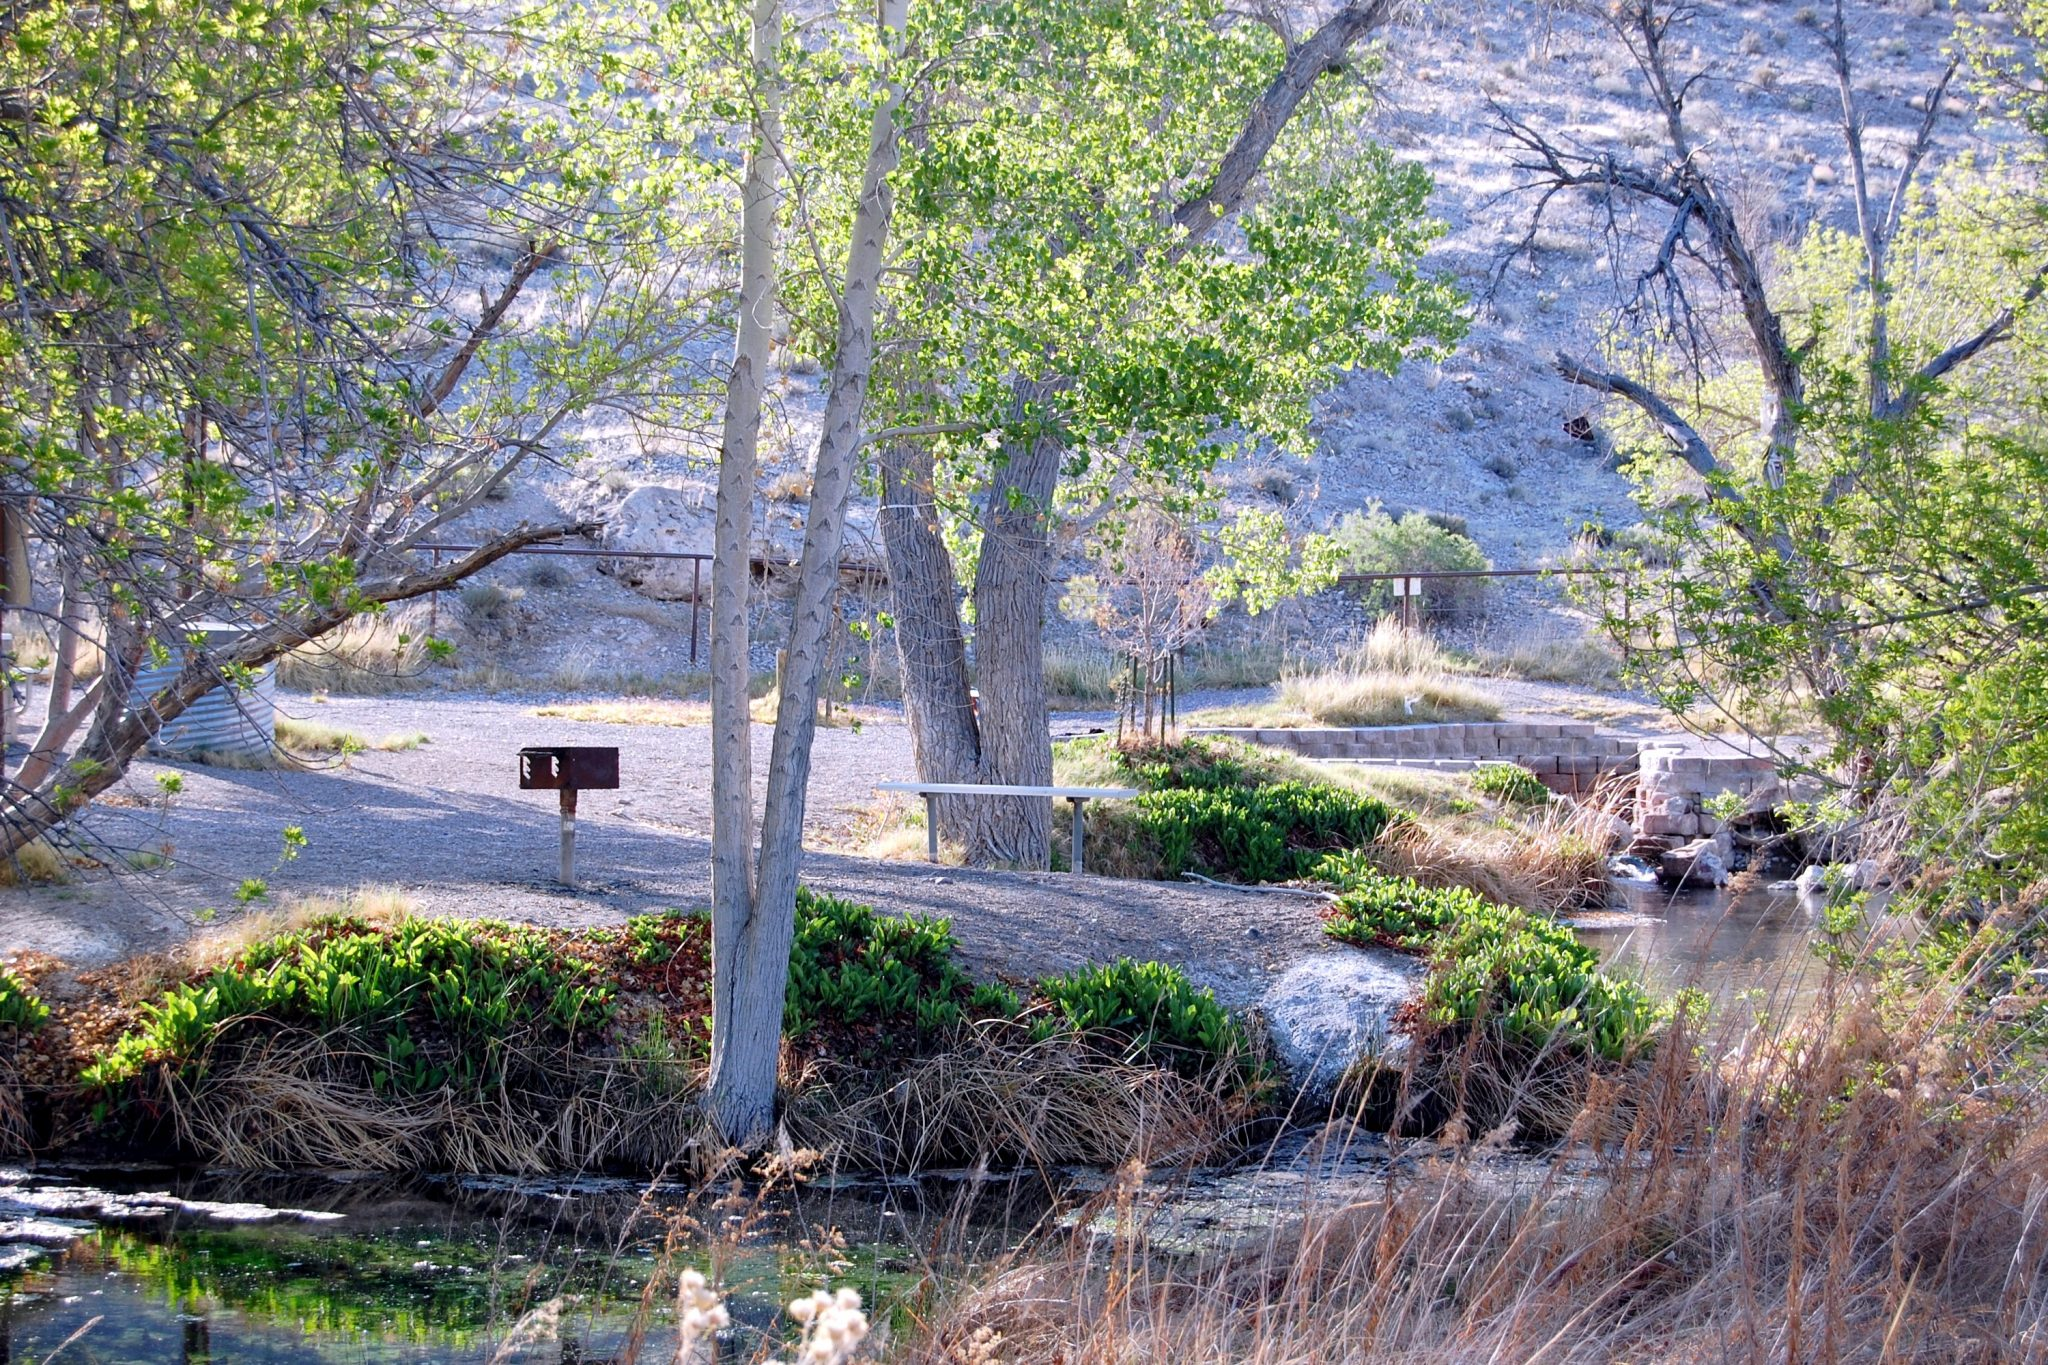 Local group hopes to redevelop Little Ash